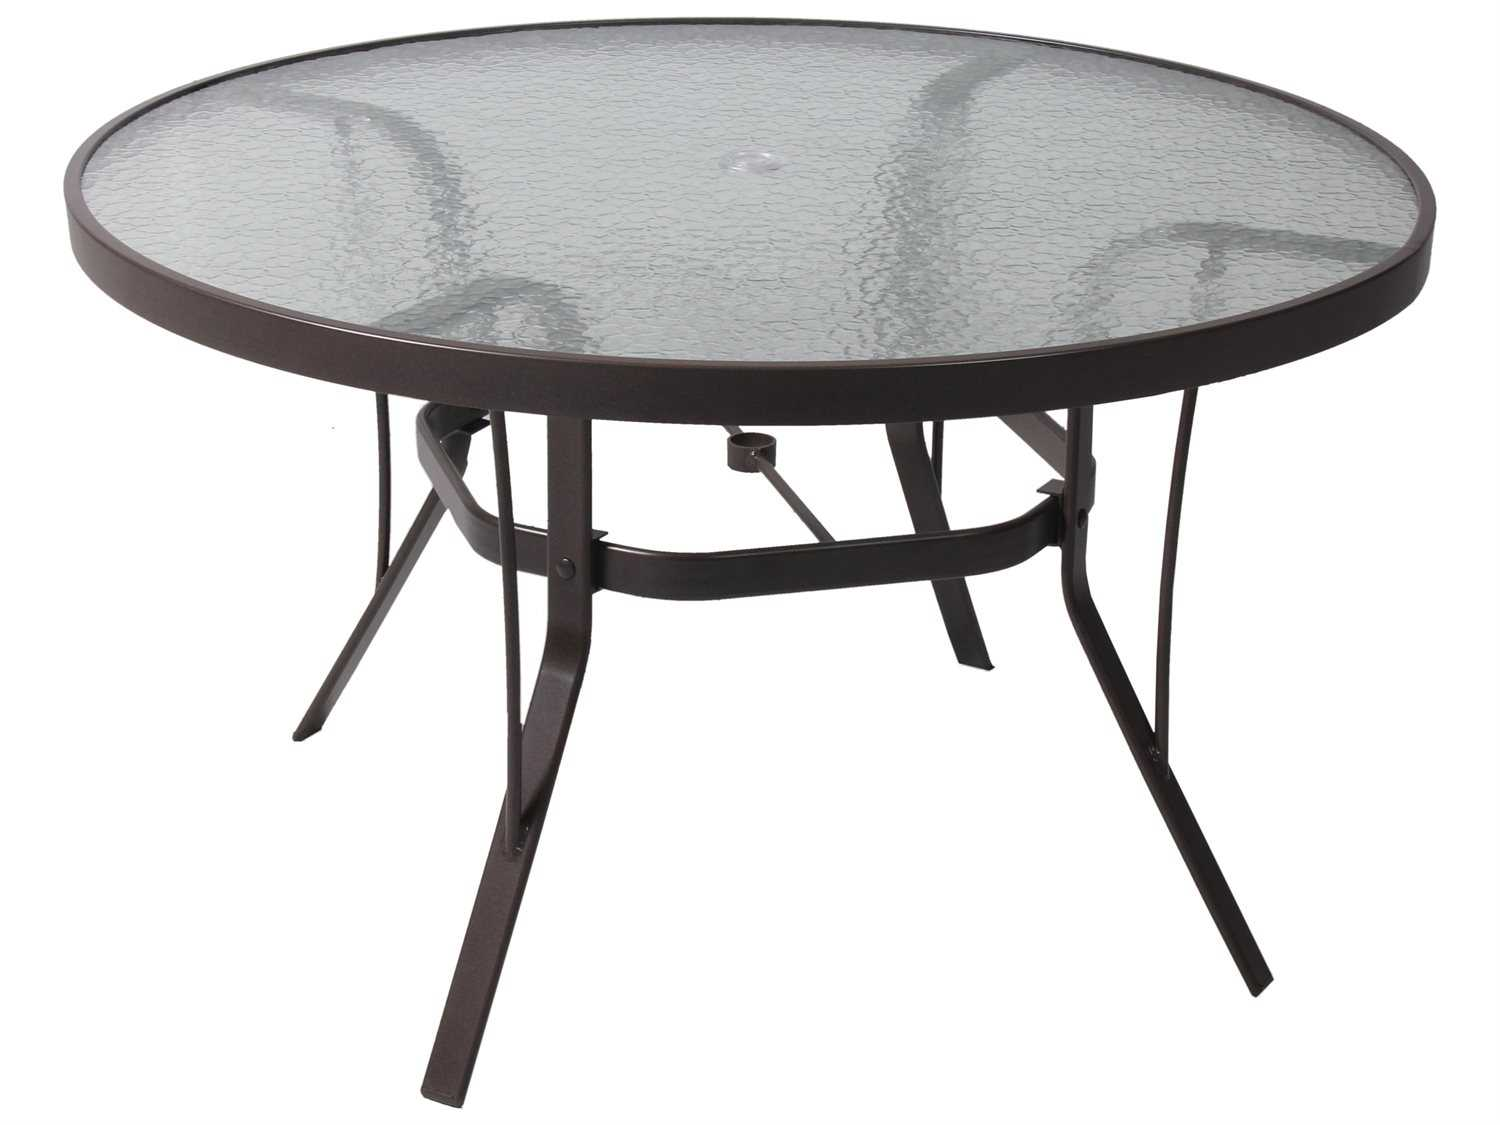 Suncoast cast aluminum 36 39 39 round glass top dining table for Outdoor dining table glass top